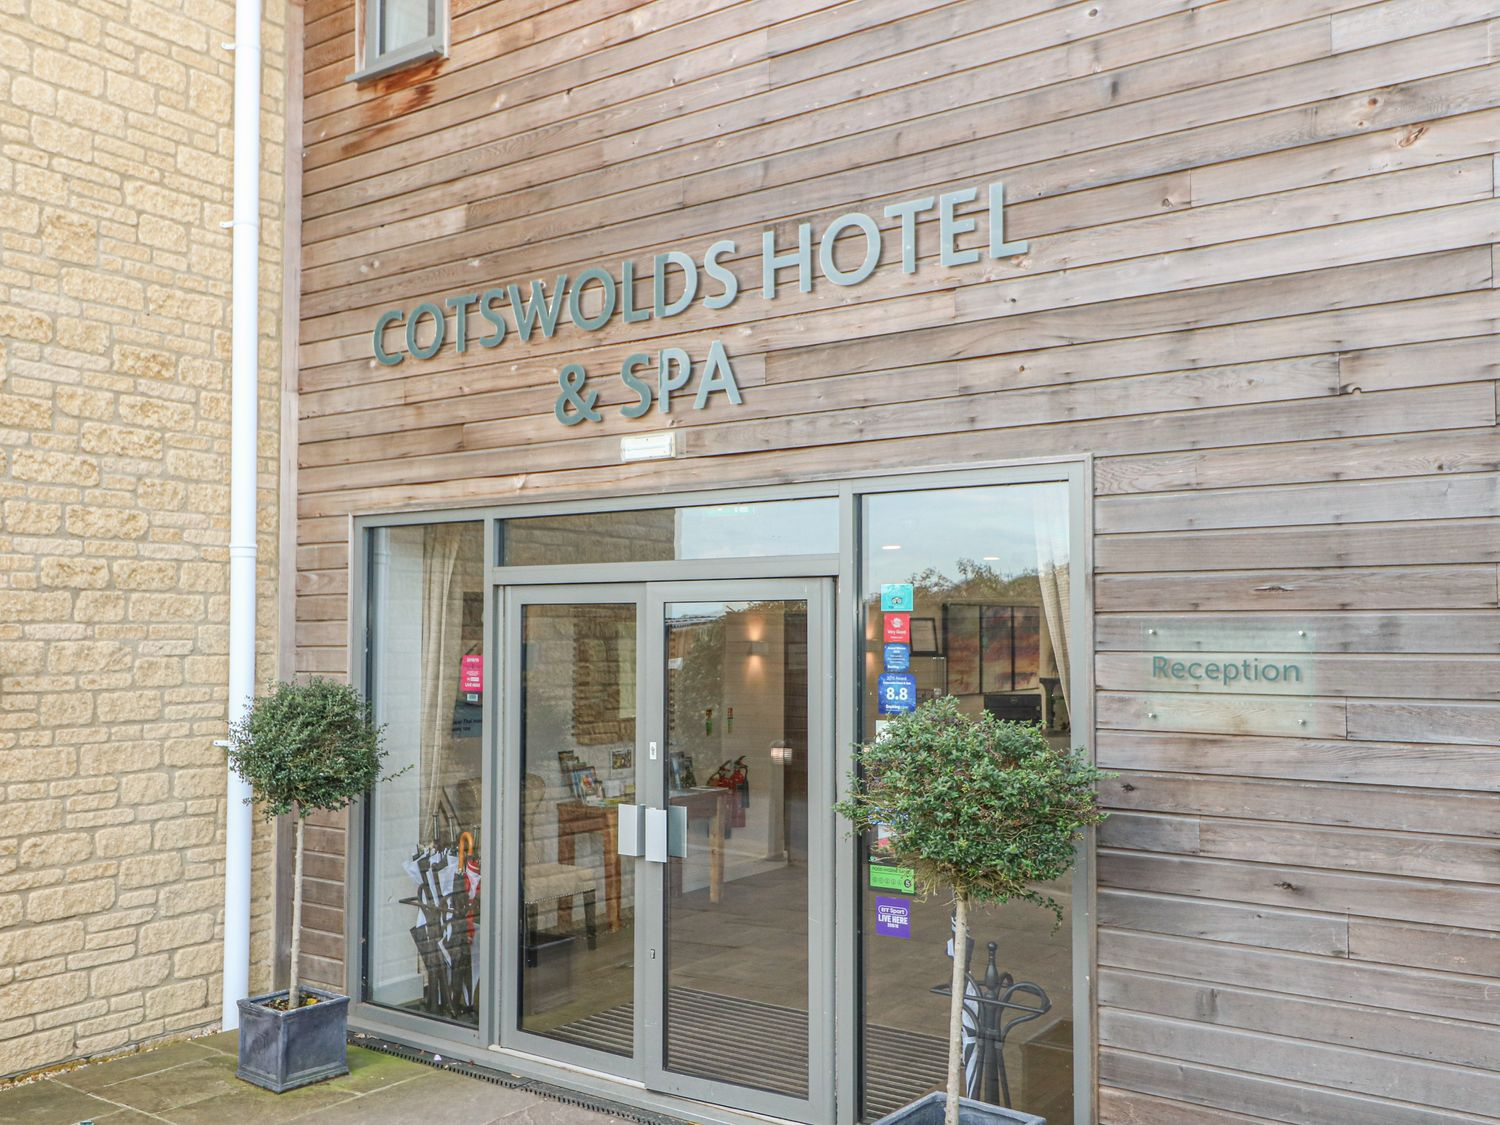 Cotswold Club ( Apartment 2 Bedroom) - Cotswolds - 1036606 - photo 1